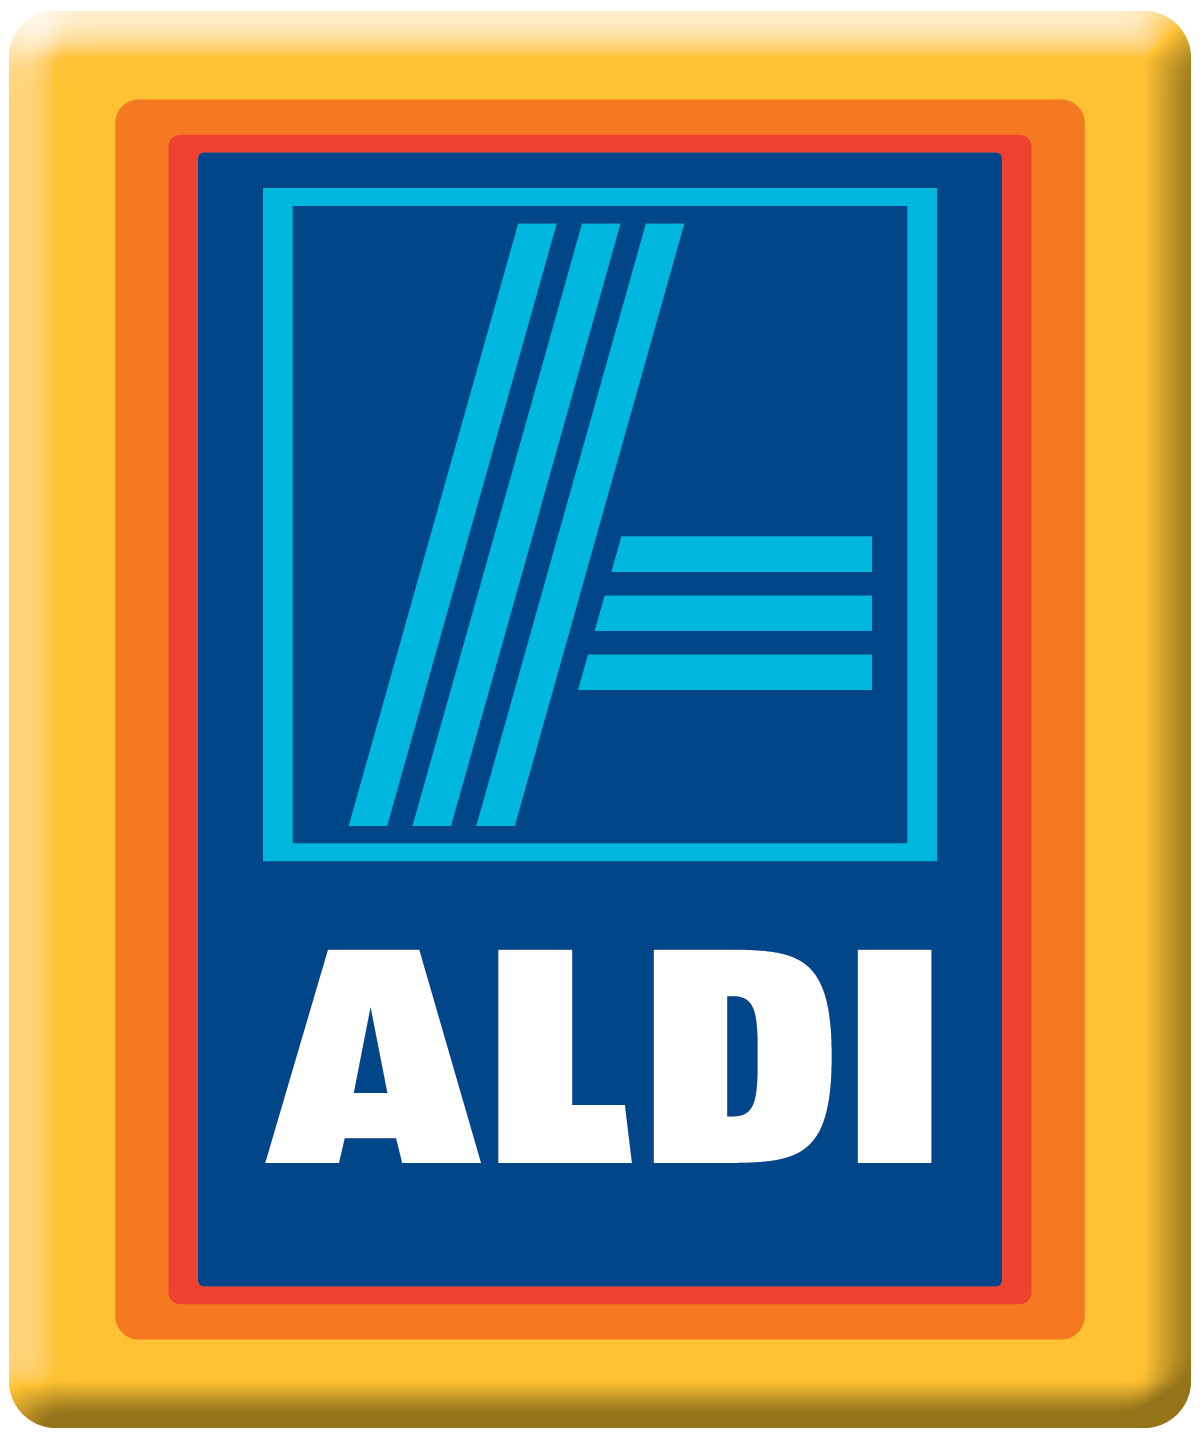 Furniture stores east brunswick nj - Aldi Comes To East Brunswick Credits Logo